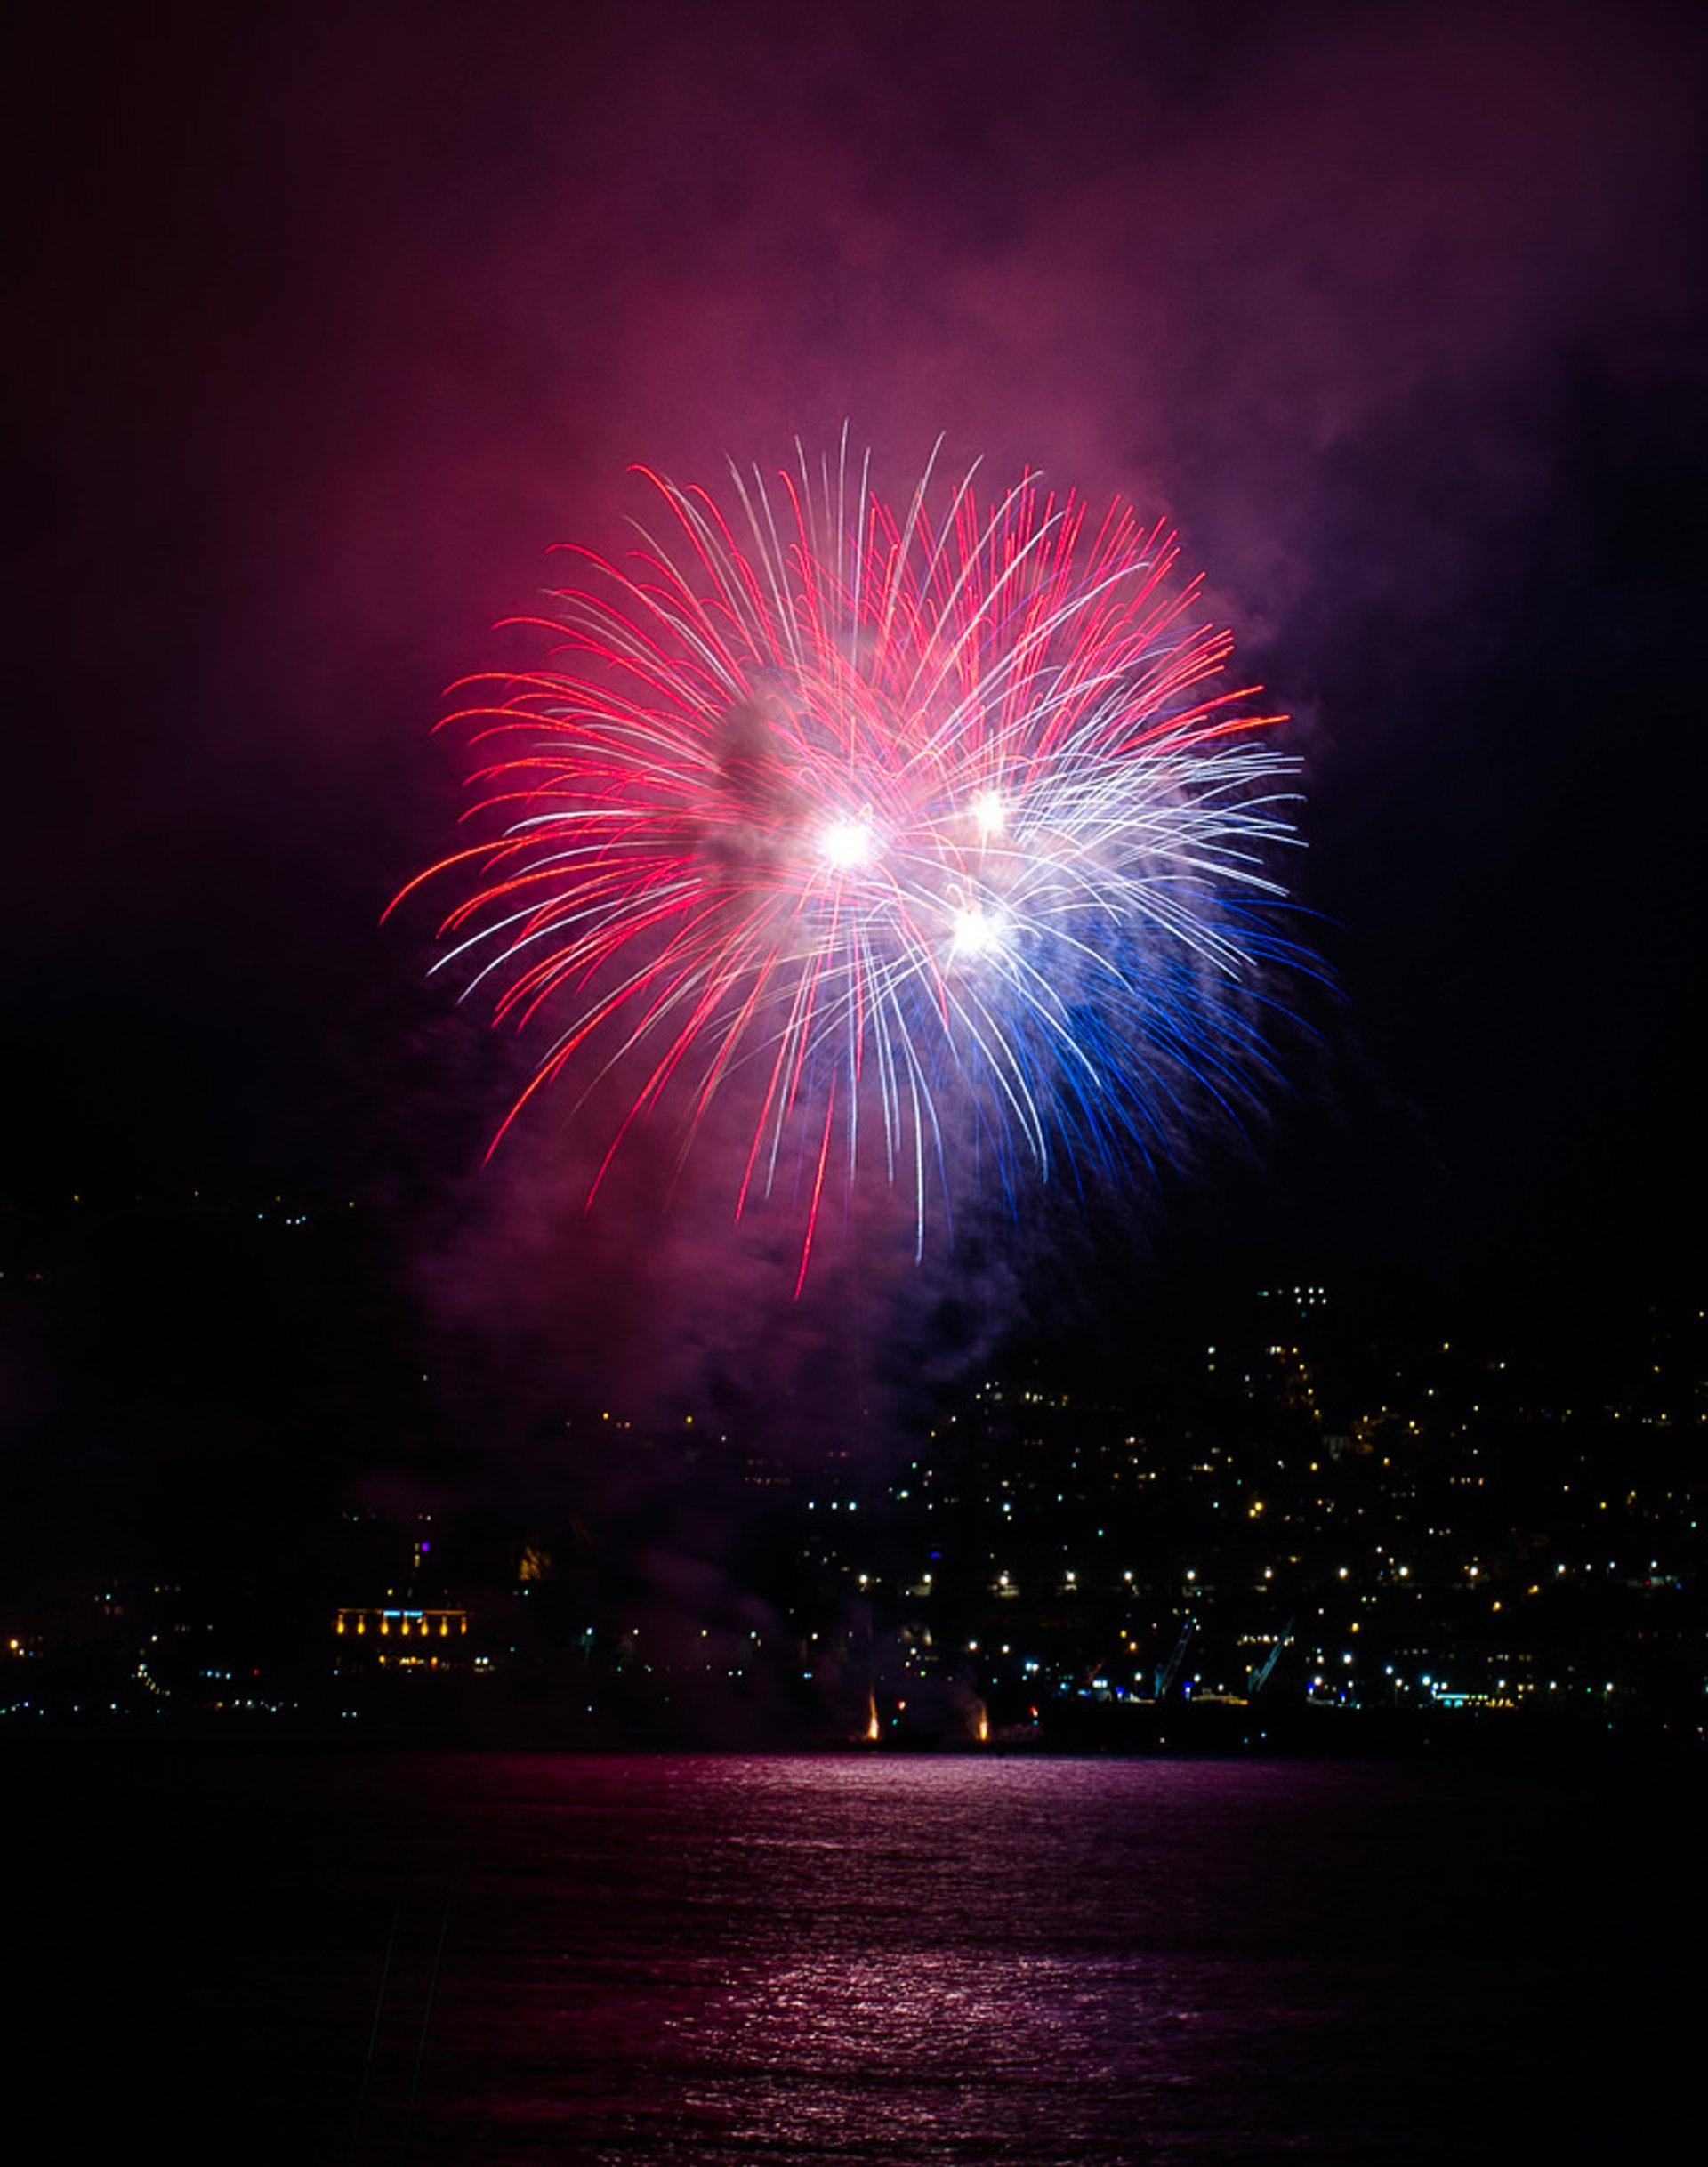 Fireworks for La Fête Nationale, July 14, 2014 in Nice, France 2020